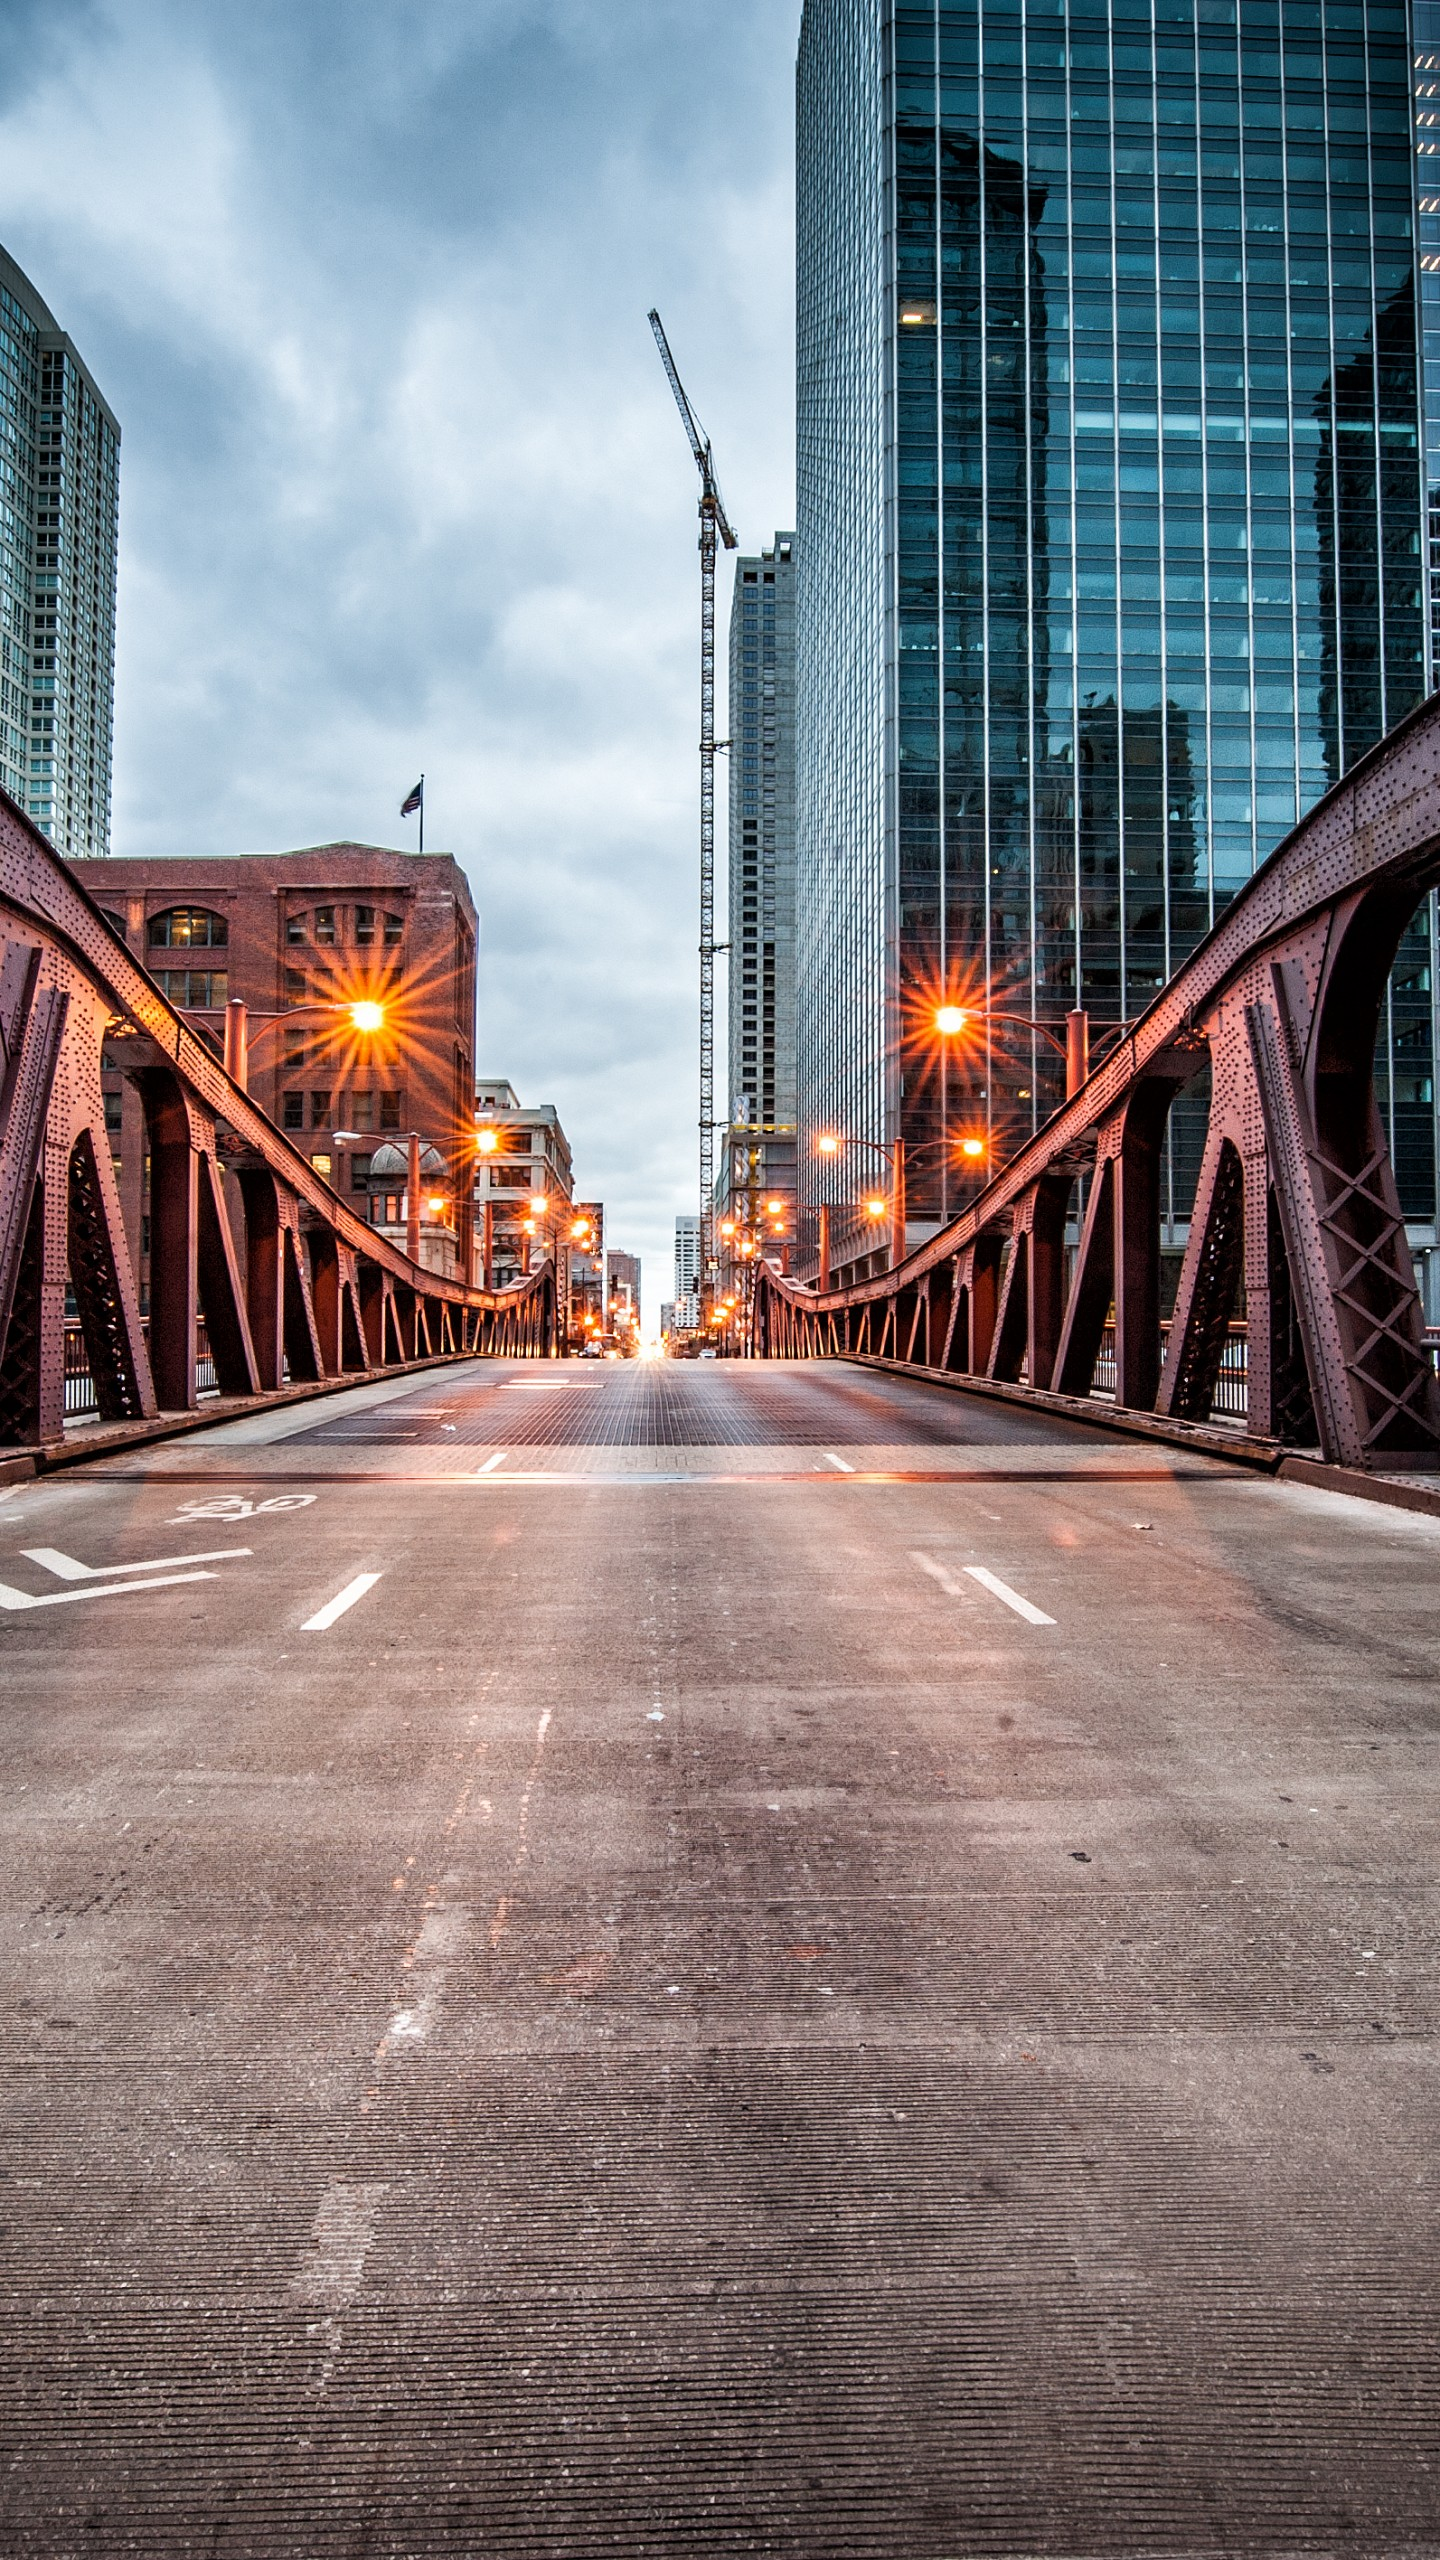 Us Military Wallpaper Quotes Wallpaper Clark Street Bridge Chicago Usa Travel